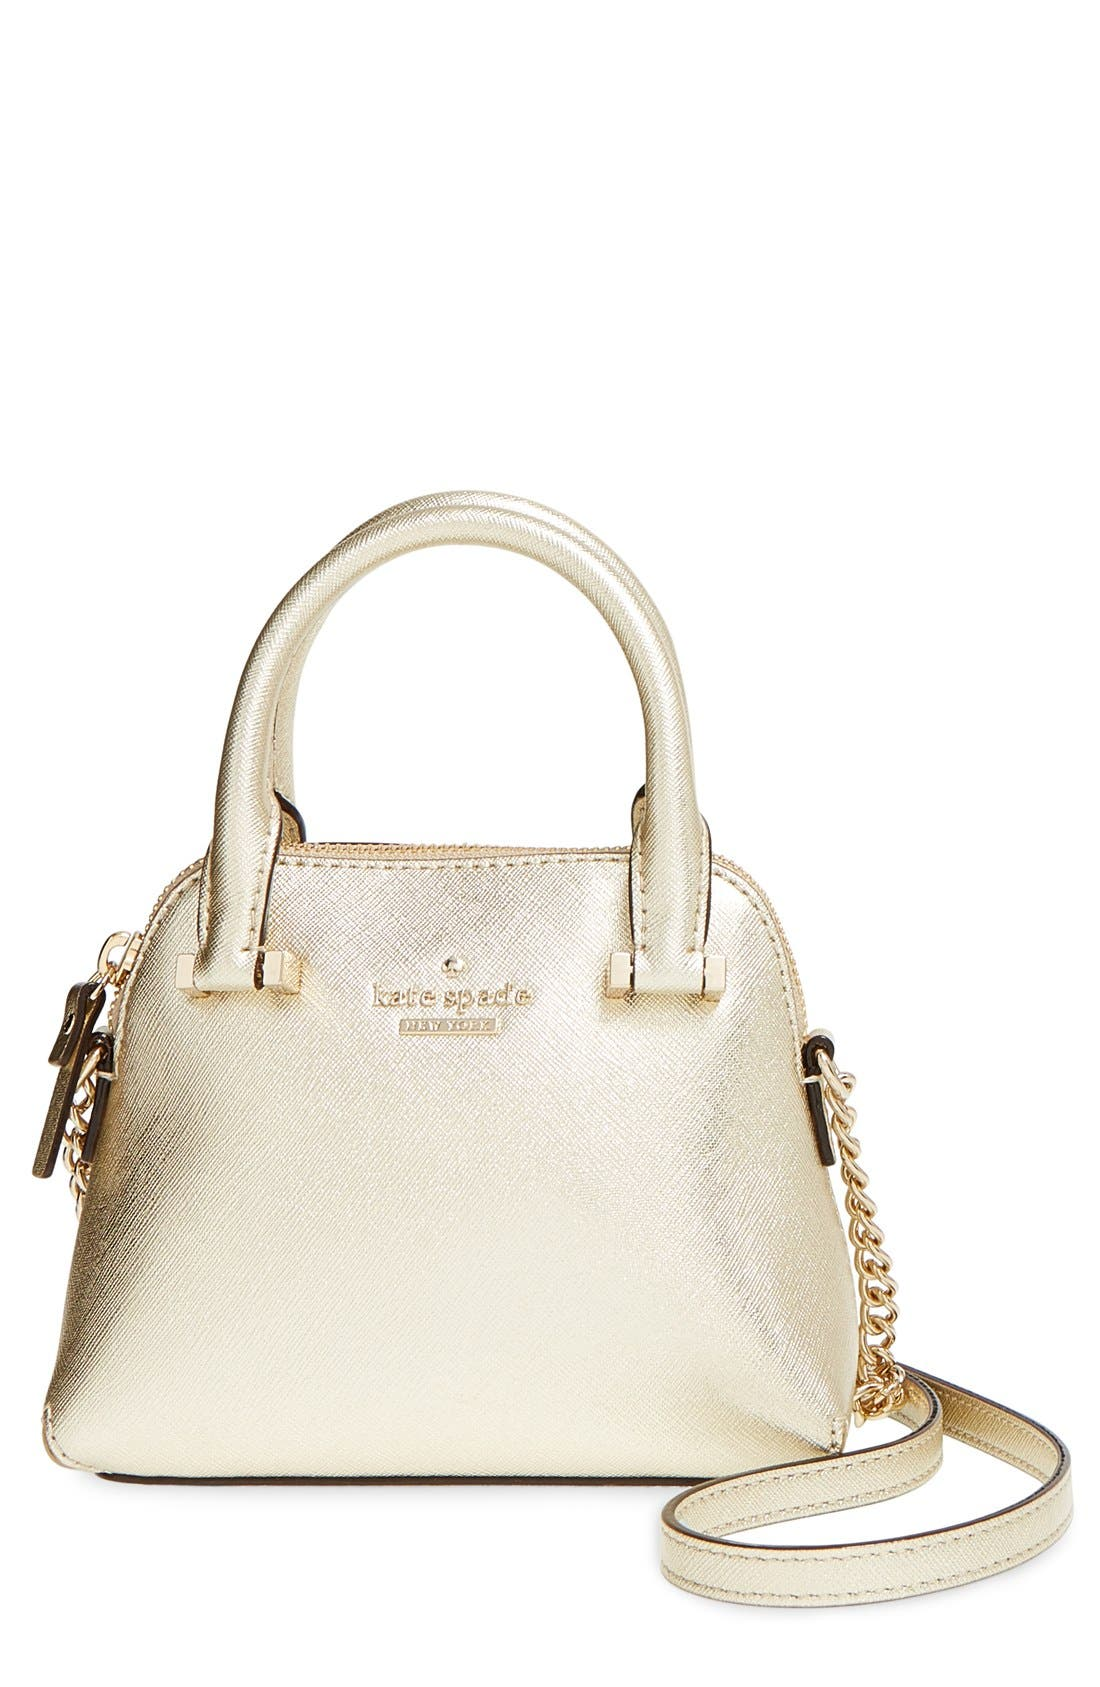 Main Image - kate spade new york 'cedar street - mini maise' metallic leather crossbody bag